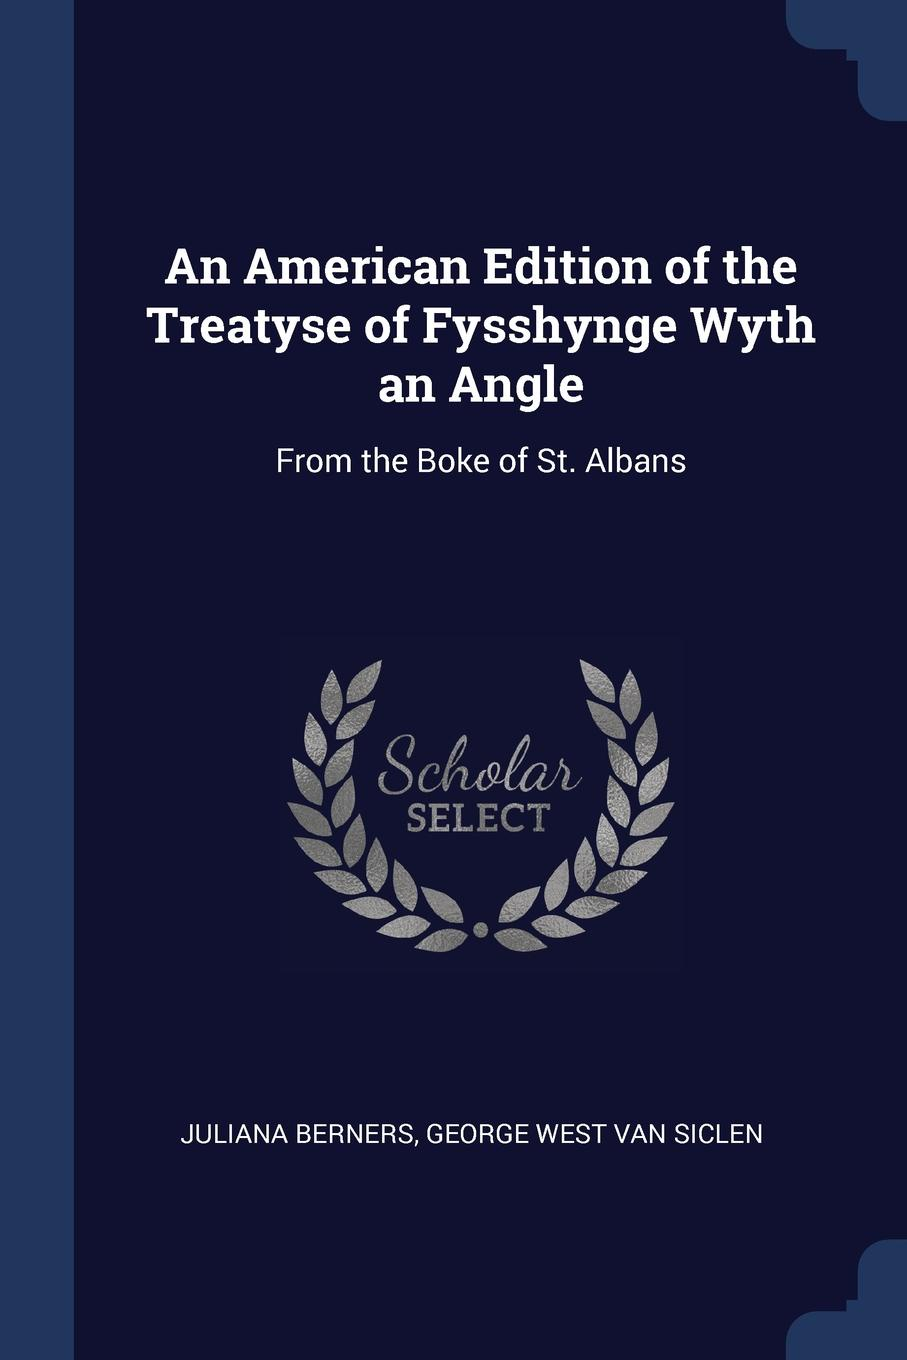 Juliana Berners, George West Van Siclen An American Edition of the Treatyse Fysshynge Wyth an Angle. From Boke St. Albans